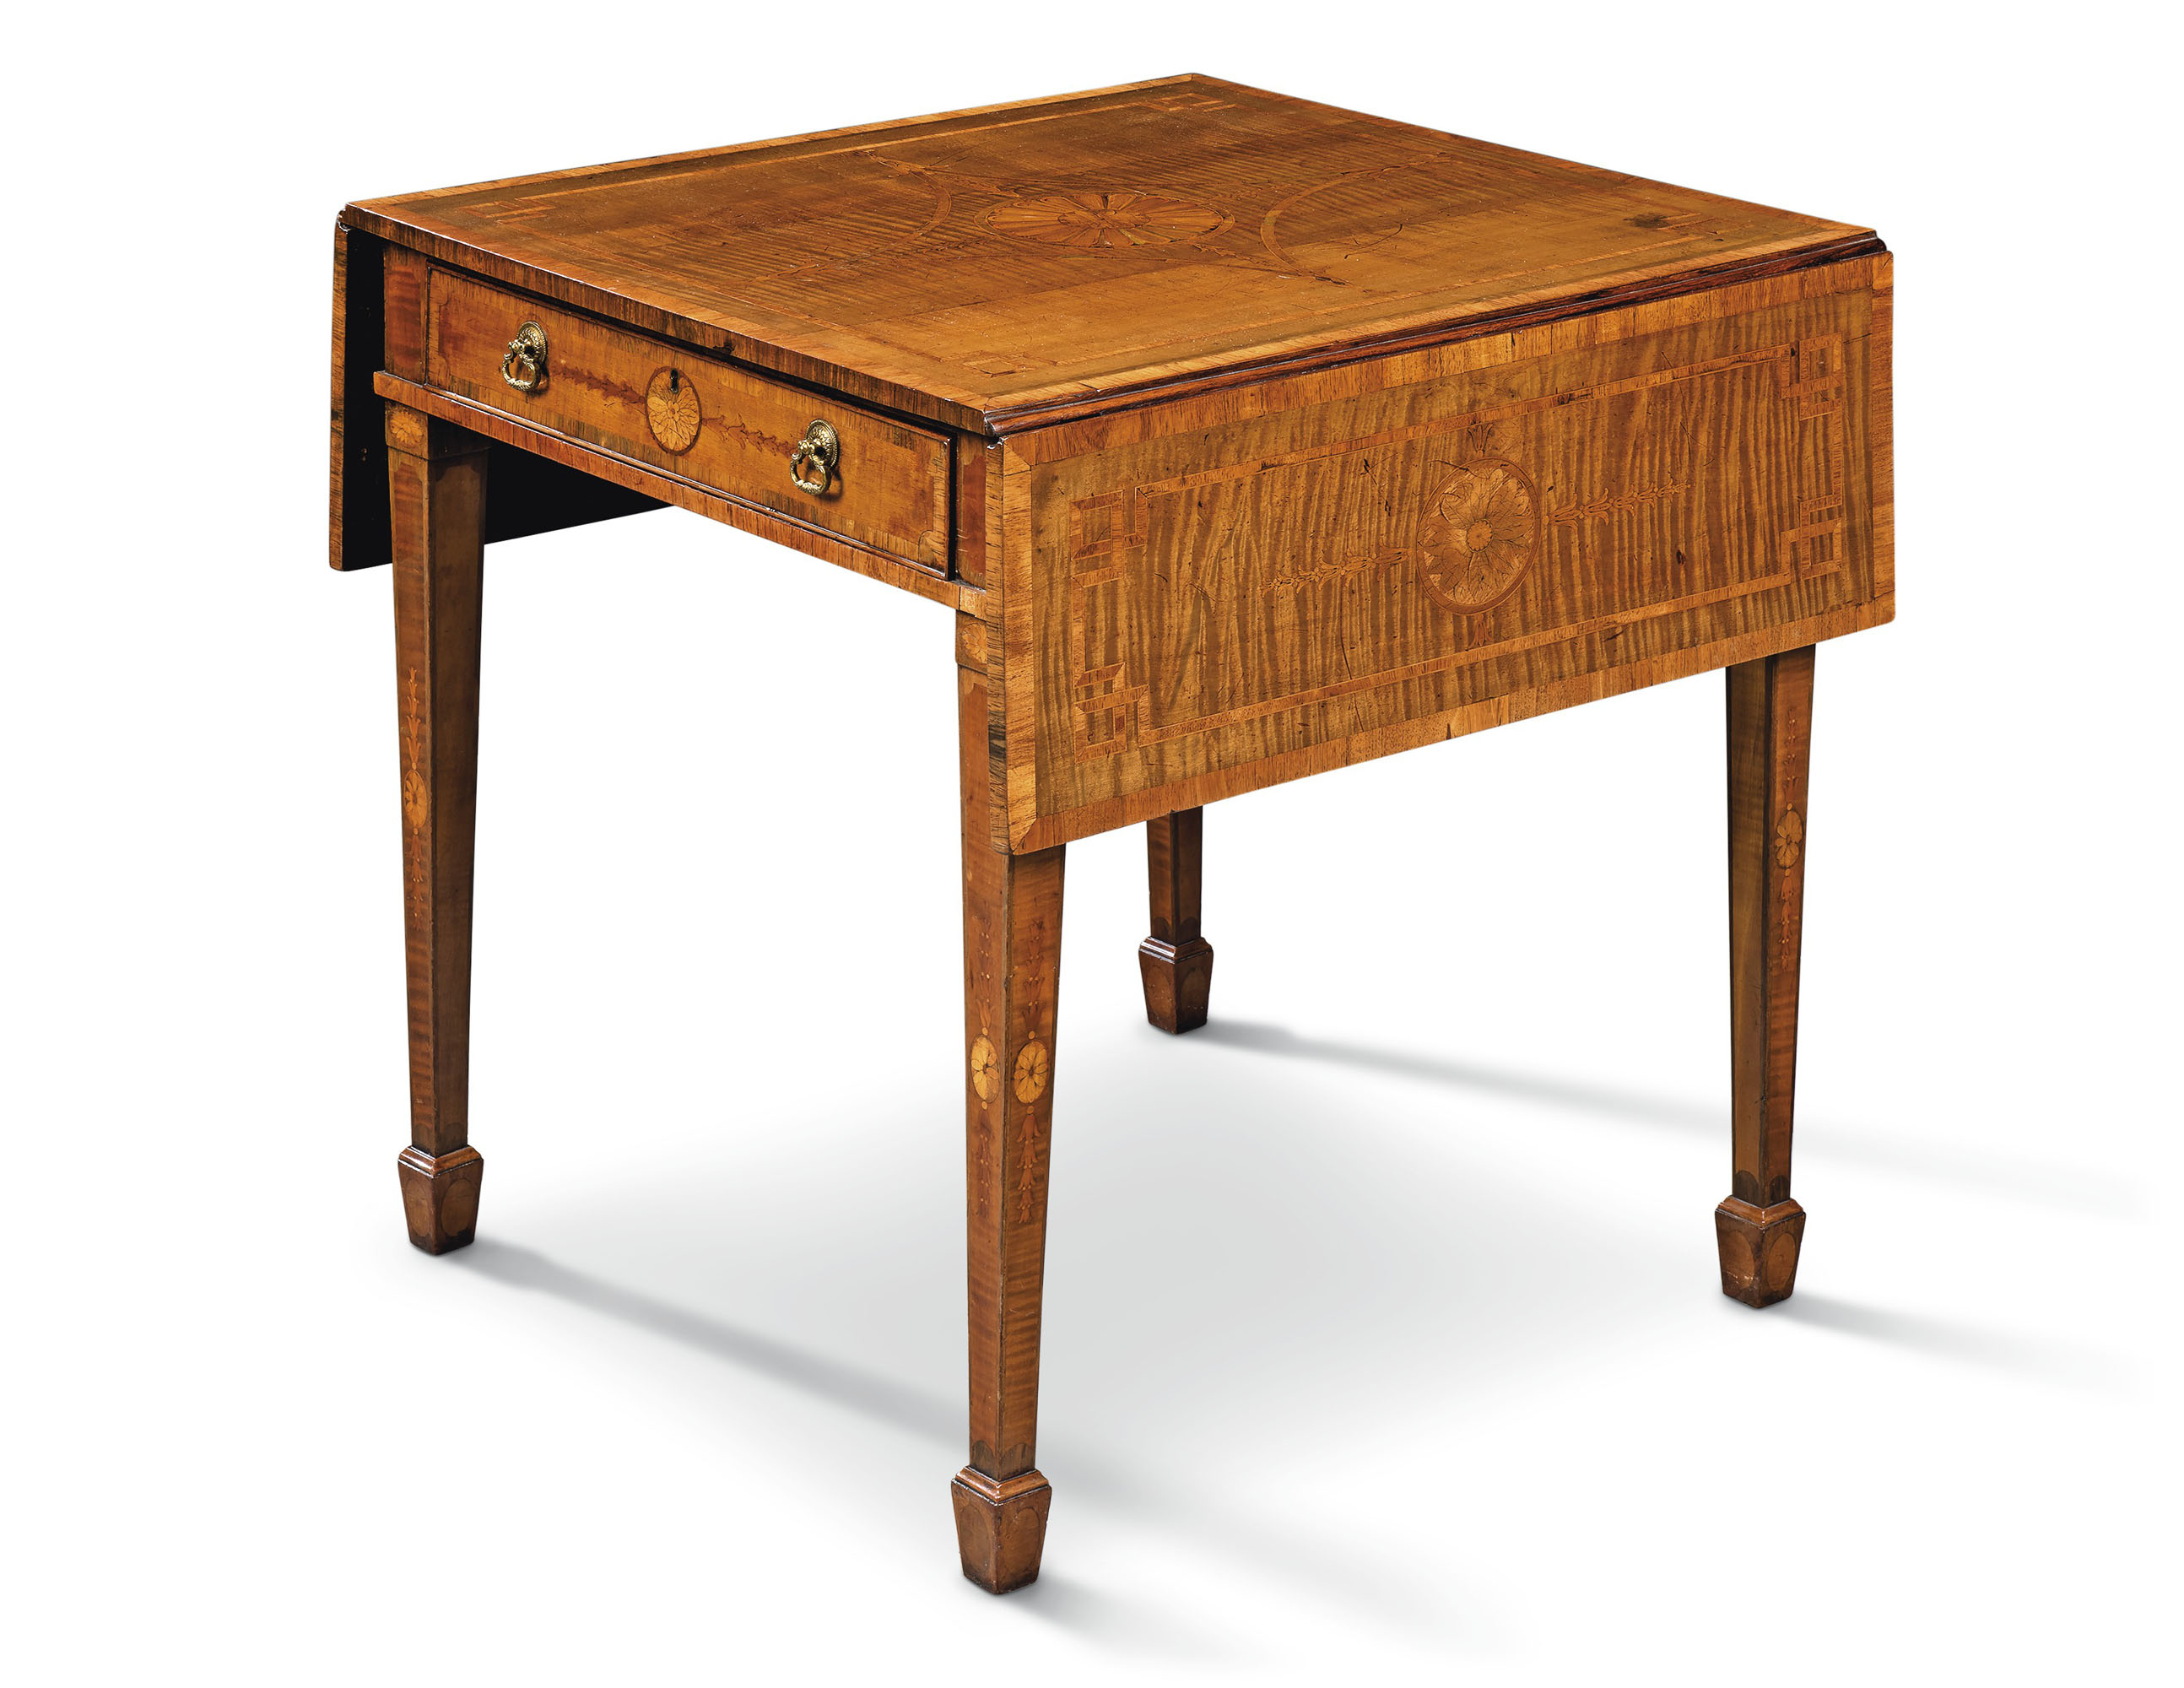 A George III tulipwood-crossbanded, harewood, Indian rosewood and fruitwood marquetry Pembroke table, attributed to Thomas Chippendale, circa 1770.27 in (69 cm) high; 24½ in (62 cm) wide (closed); 26 in (66 cm) deep. Estimate £20,000-40,000.Offered inThe Collection of Mrs. Henry Ford II Eaton Square and Turville Grangeon 15 April at Christie's in London